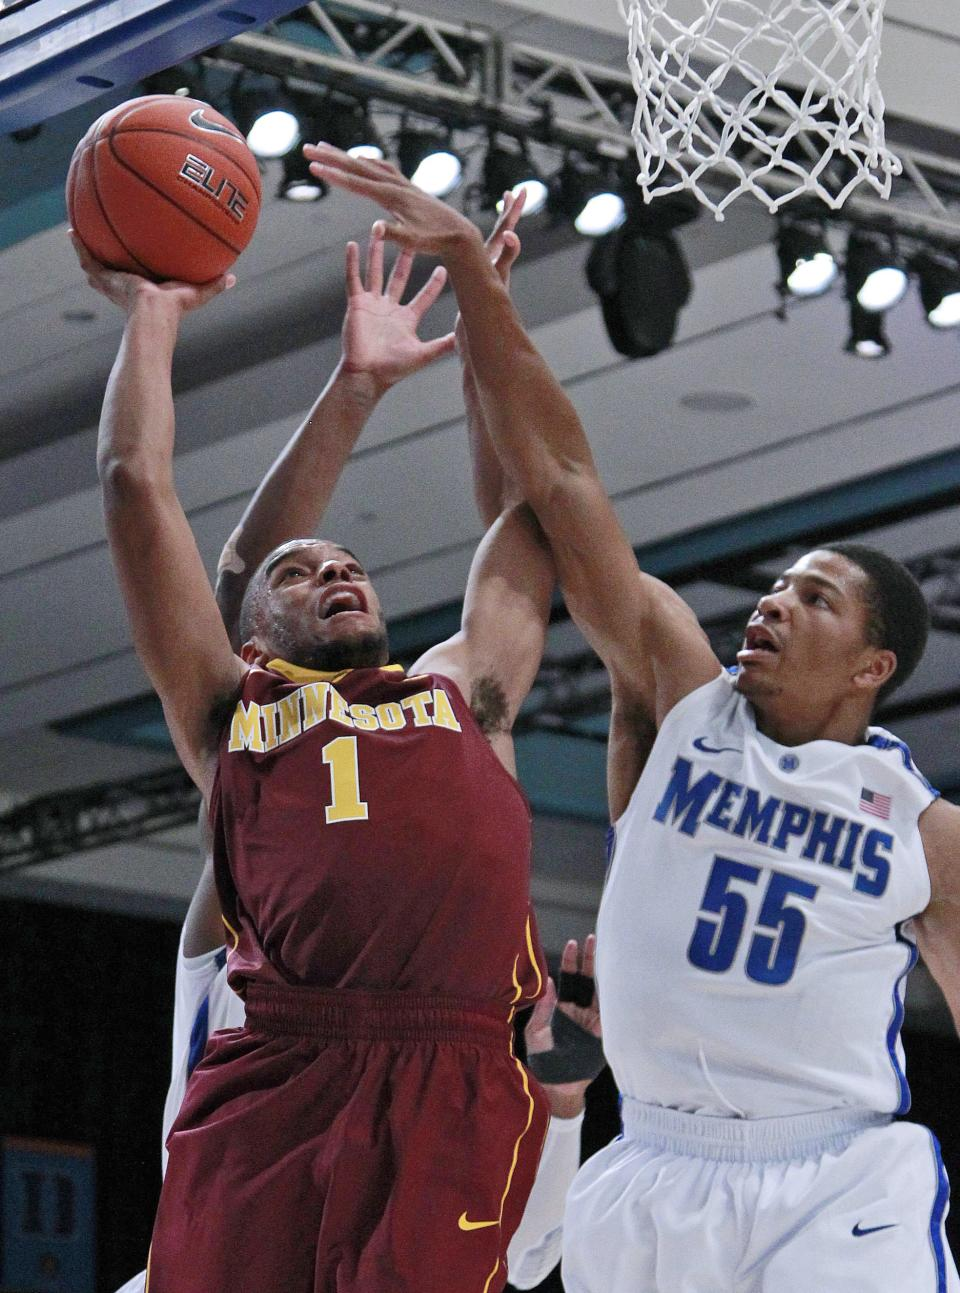 Minnesota guard Andre Hollins (1) goes to the basket as Memphis guard Geron Johnson (55) defends during the first half of an NCAA college basketball game at the Battle 4 Atlantis tournament, Friday, Nov. 23, 2012 in Paradise Island, Bahamas. (AP Photo/John Bazemore)